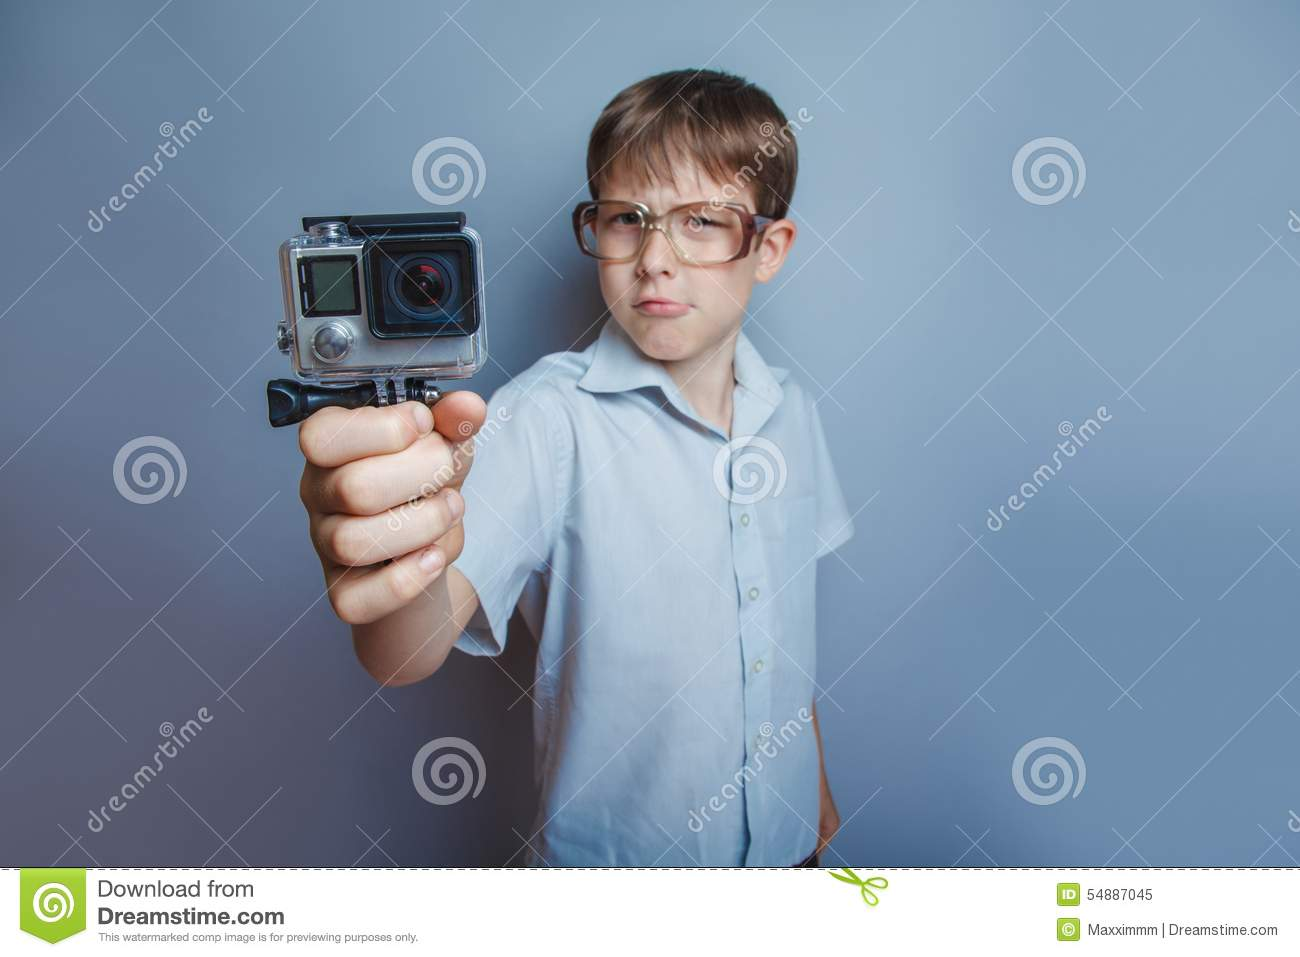 Teenager Boy 10 Years Of European Appearance Stock Image